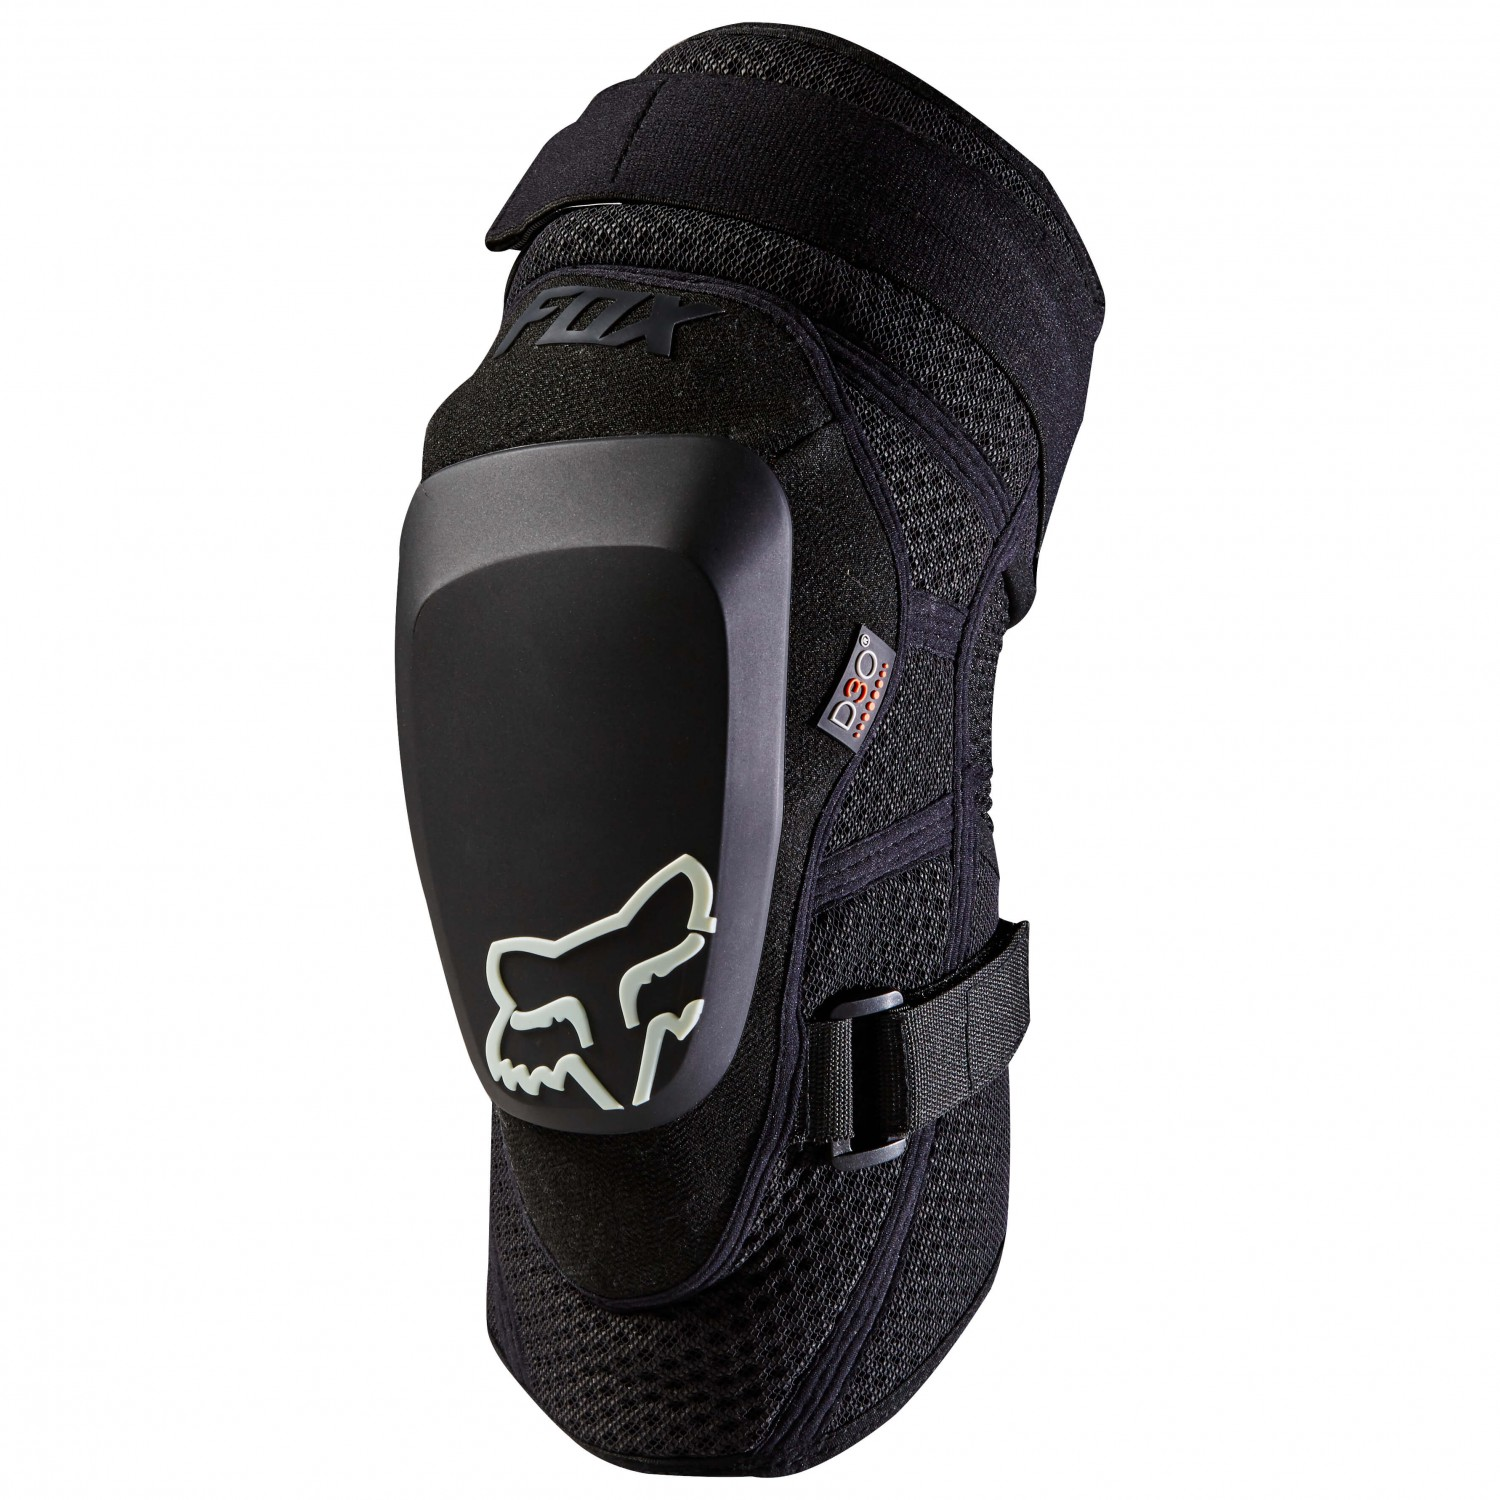 Fox Launch pro D30 Knee Guard MTB Protector Red Mountain Bike Dh